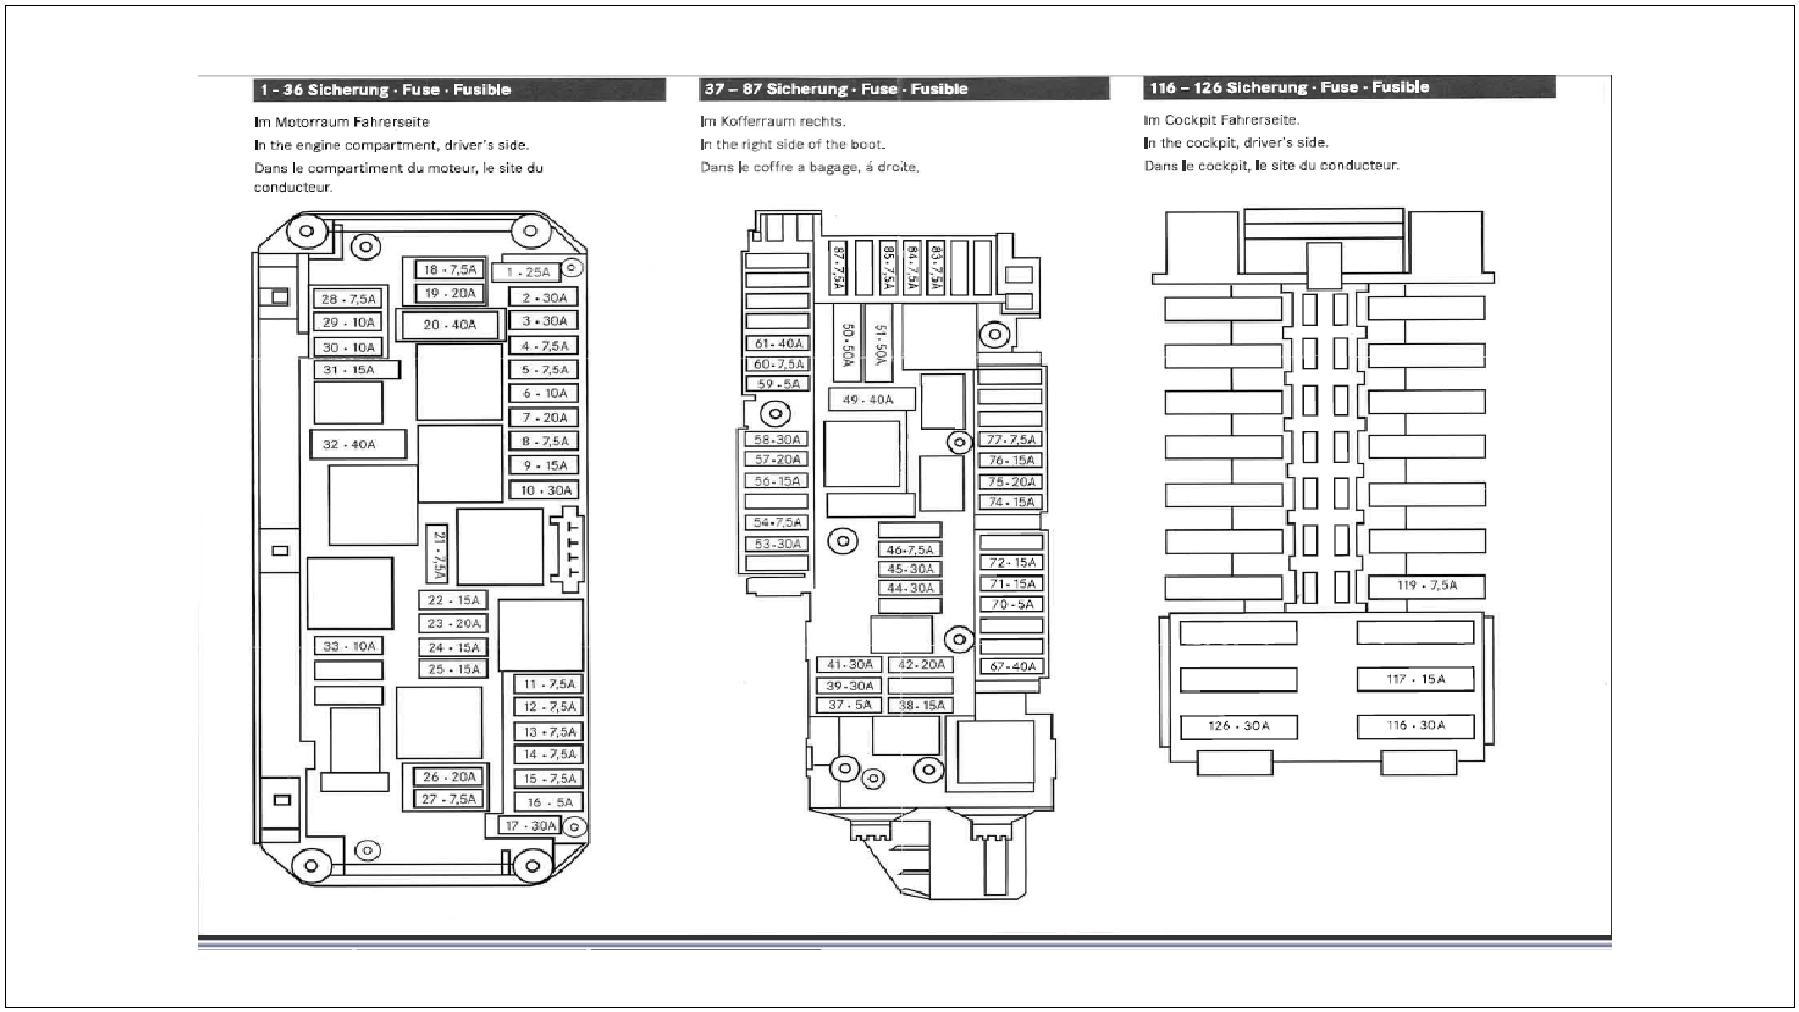 [DIAGRAM_5LK]  Mazda Bongo Fuse Box Layout | Wiring Library | Mazda Bongo Fuse Box Layout |  | Wiring Library